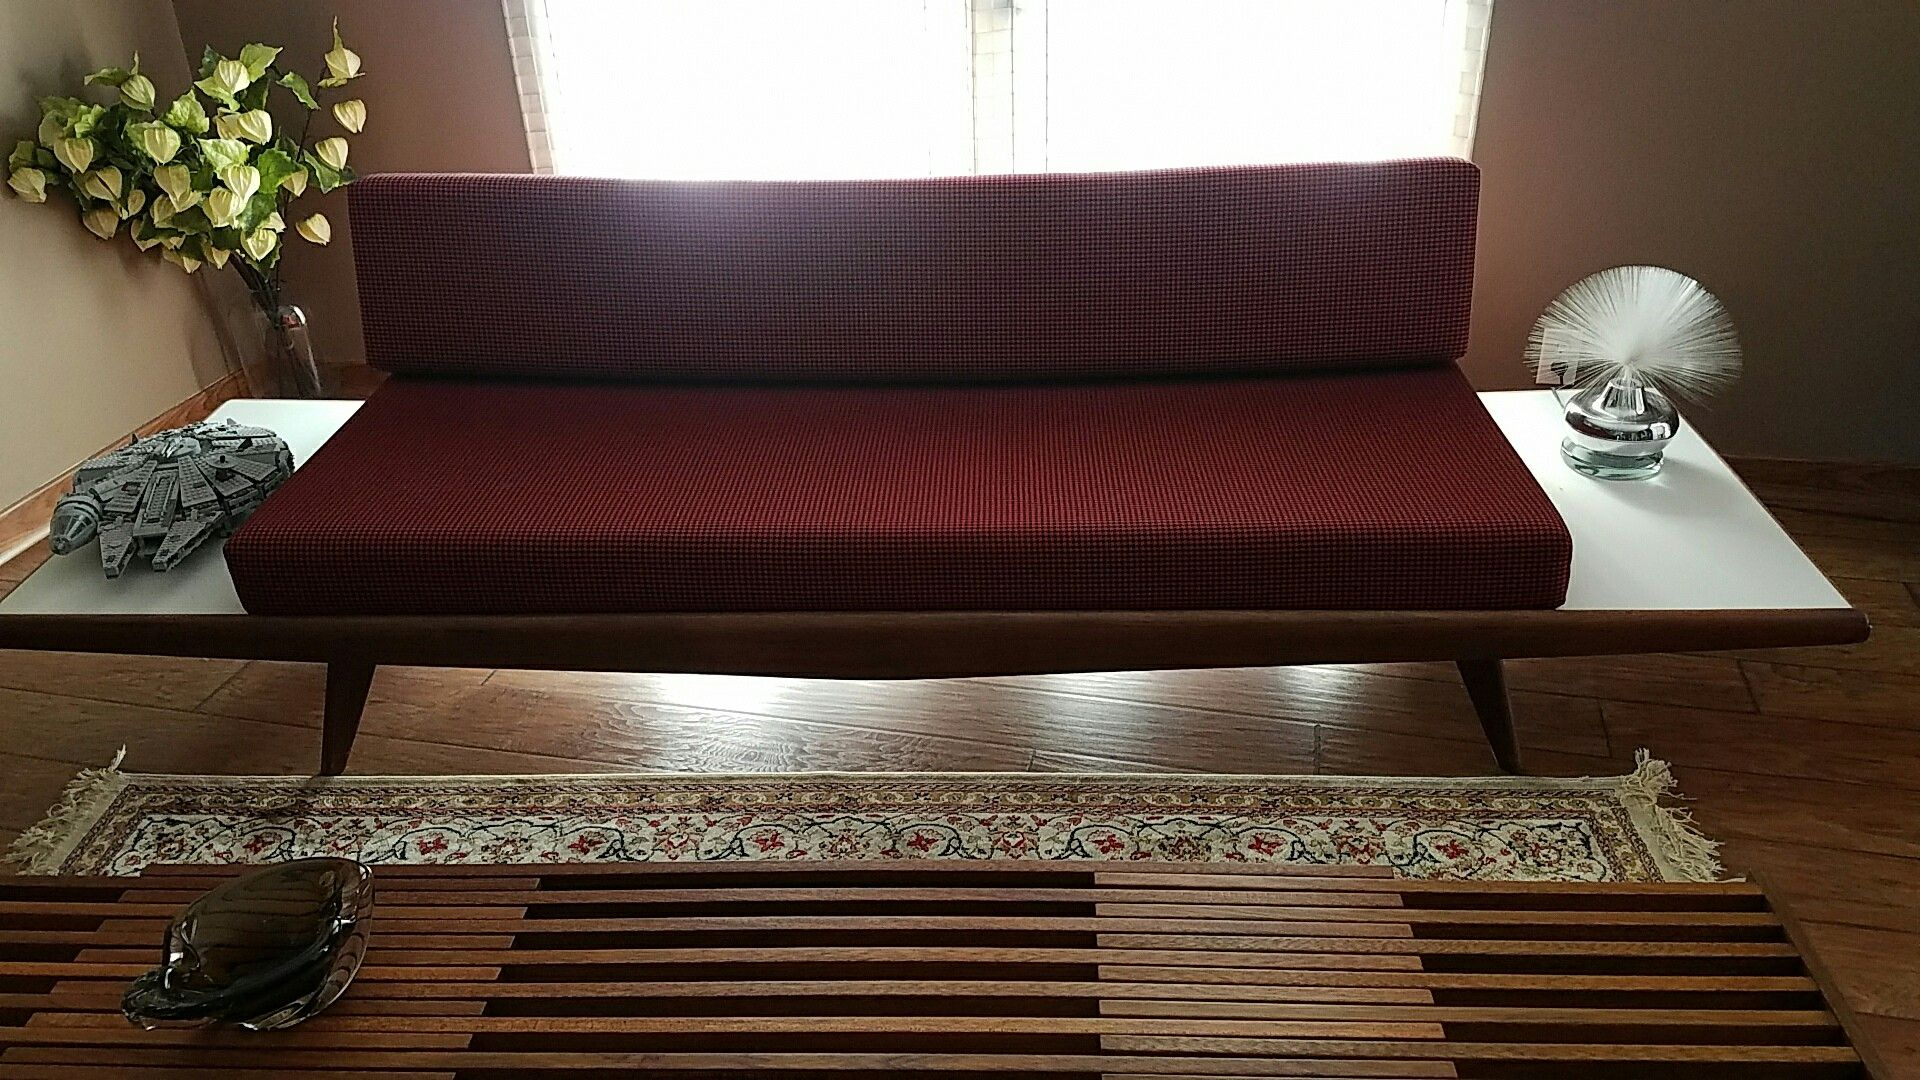 Sofa Daybed Craigslist Find Santa Maria Inventory Daybed